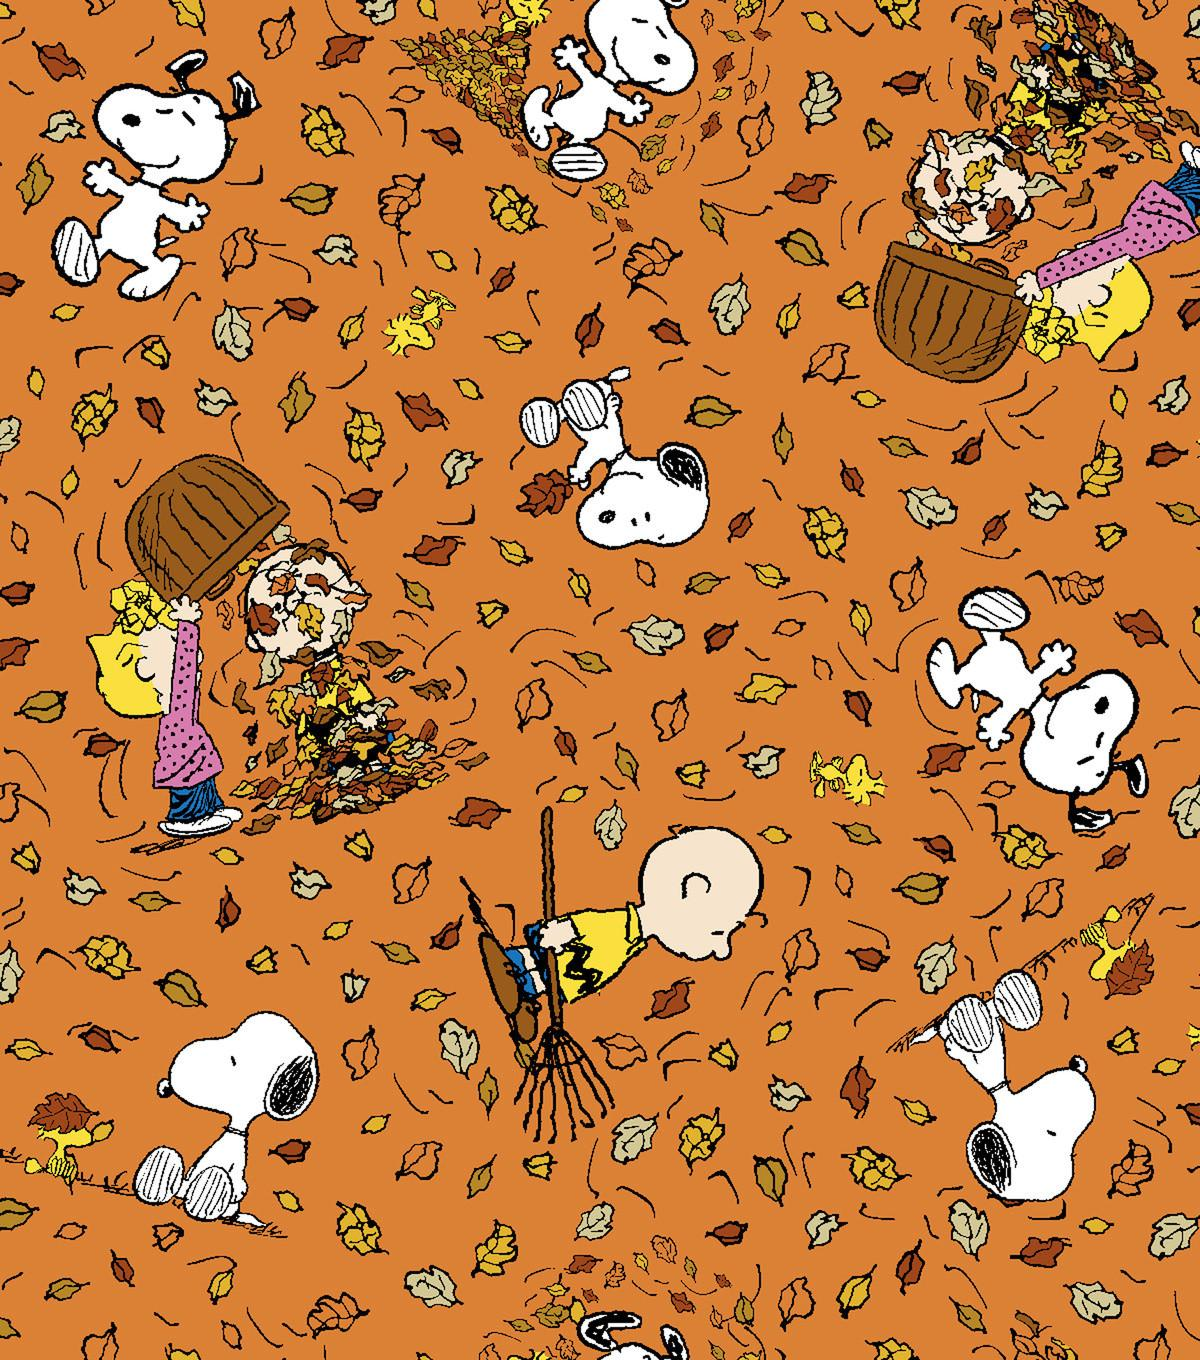 Autumn Inspirations Peanuts Falling Leaves Fabric Ann